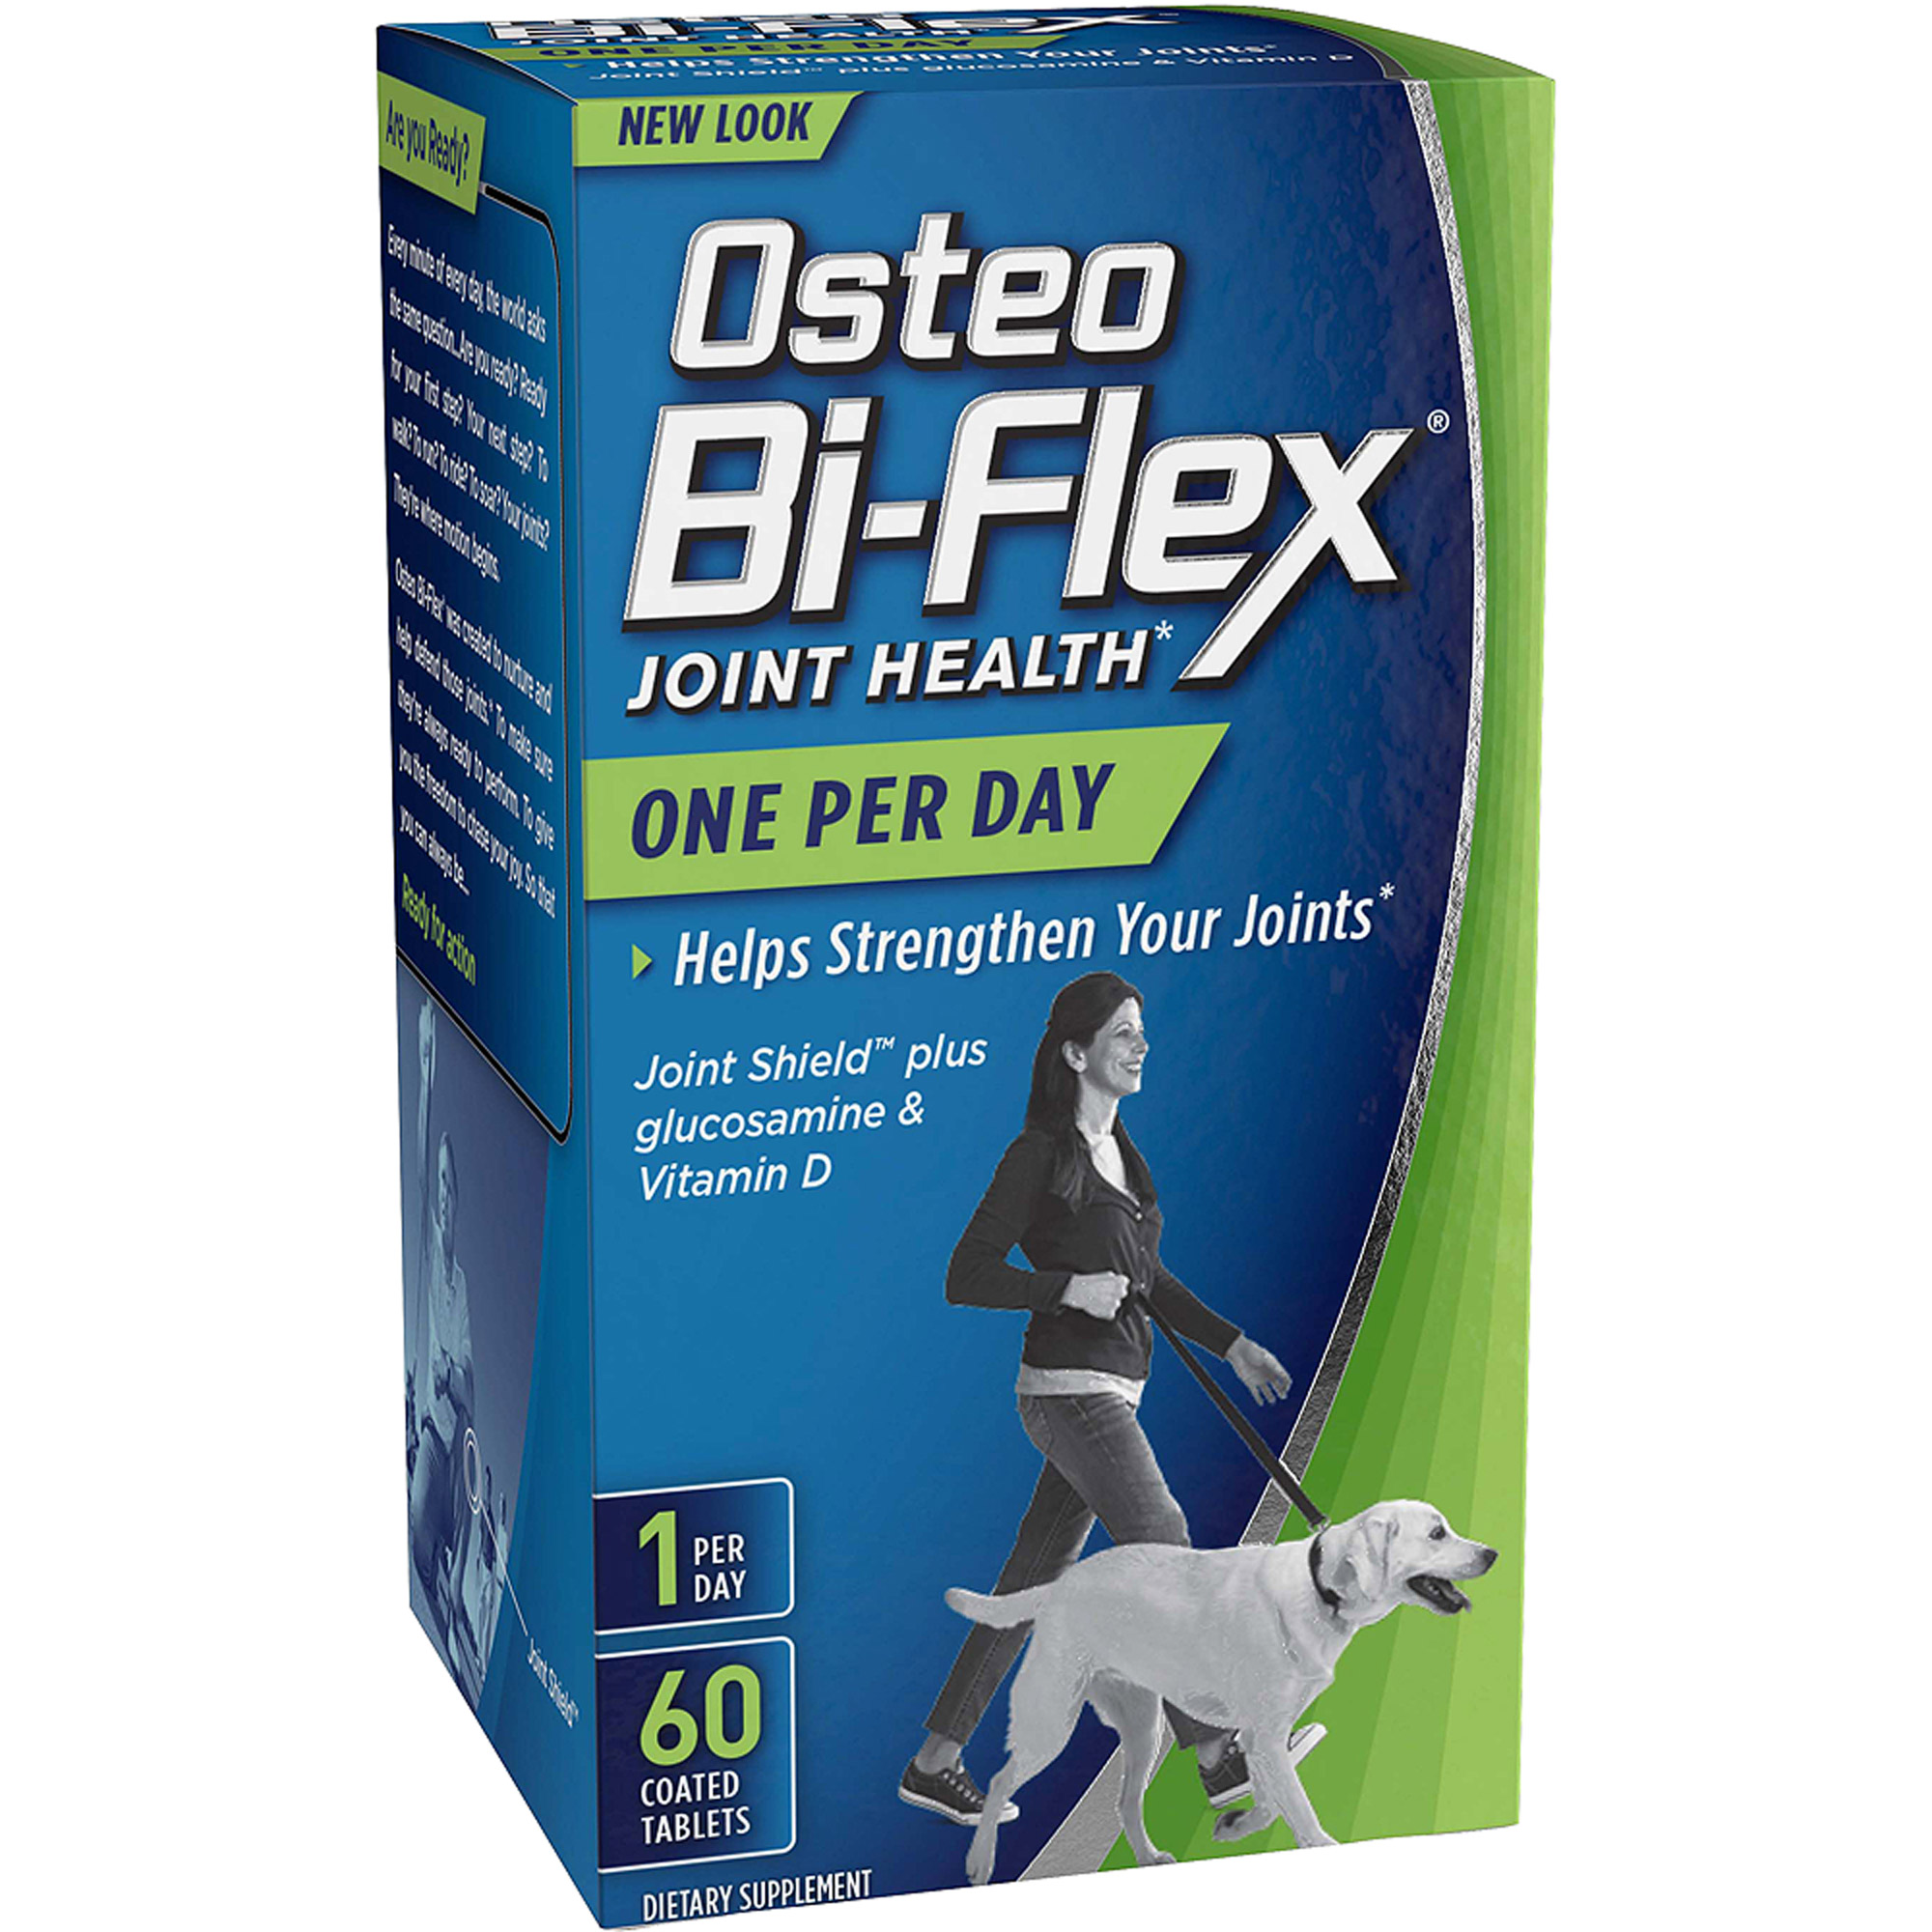 Osteo Bi-Flex One Per Day Joint Health Dietary Supplement Tablets, 60 count